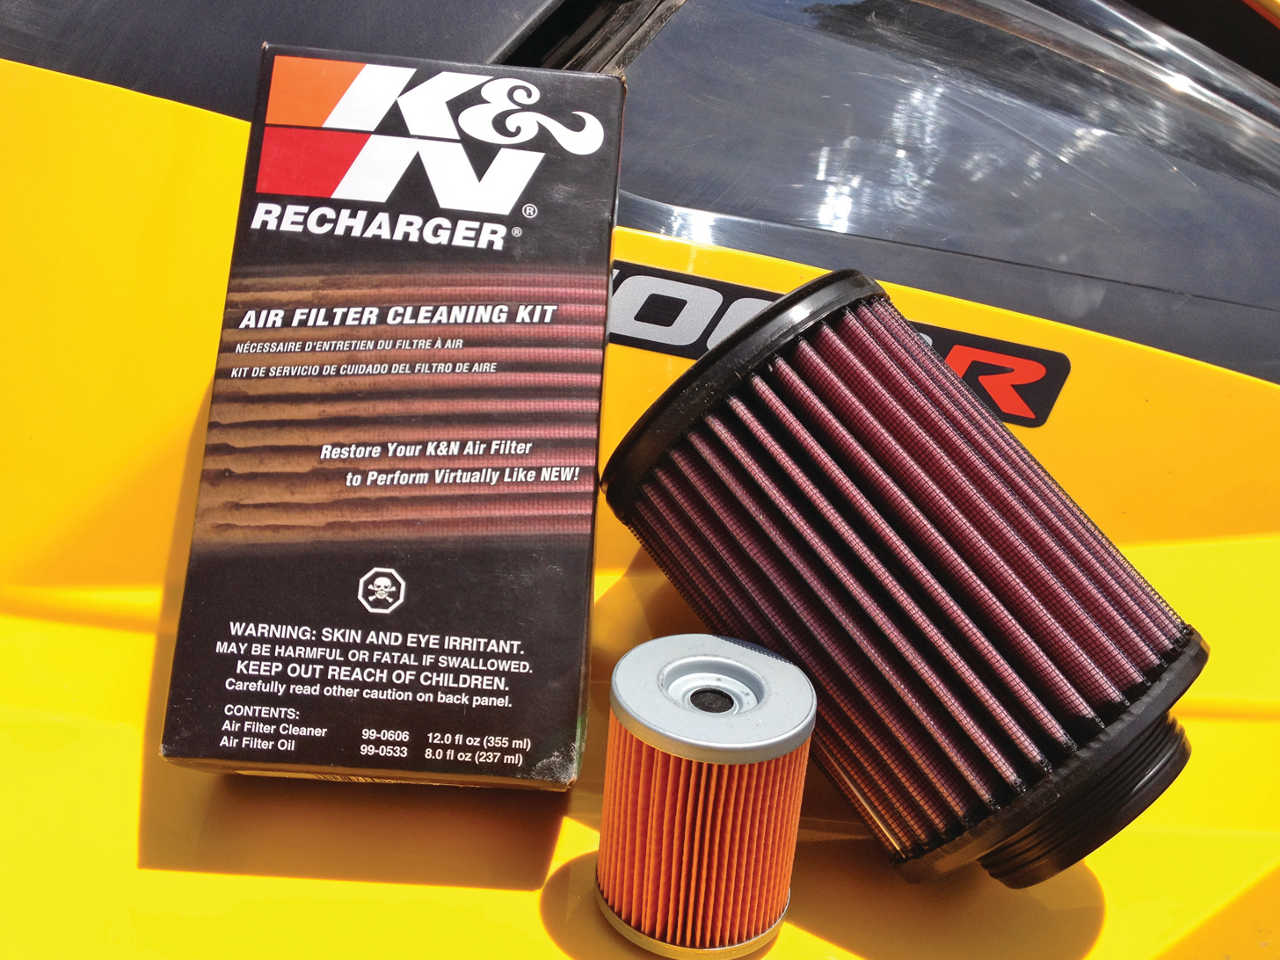 D Diagnosing Low Oil Pressure Symptoms Your Mercedes Img furthermore F B moreover Maxresdefault in addition D Diy Fuel Filter Replacement Relief Valve also Maxresdefault. on engine oil filter pressure